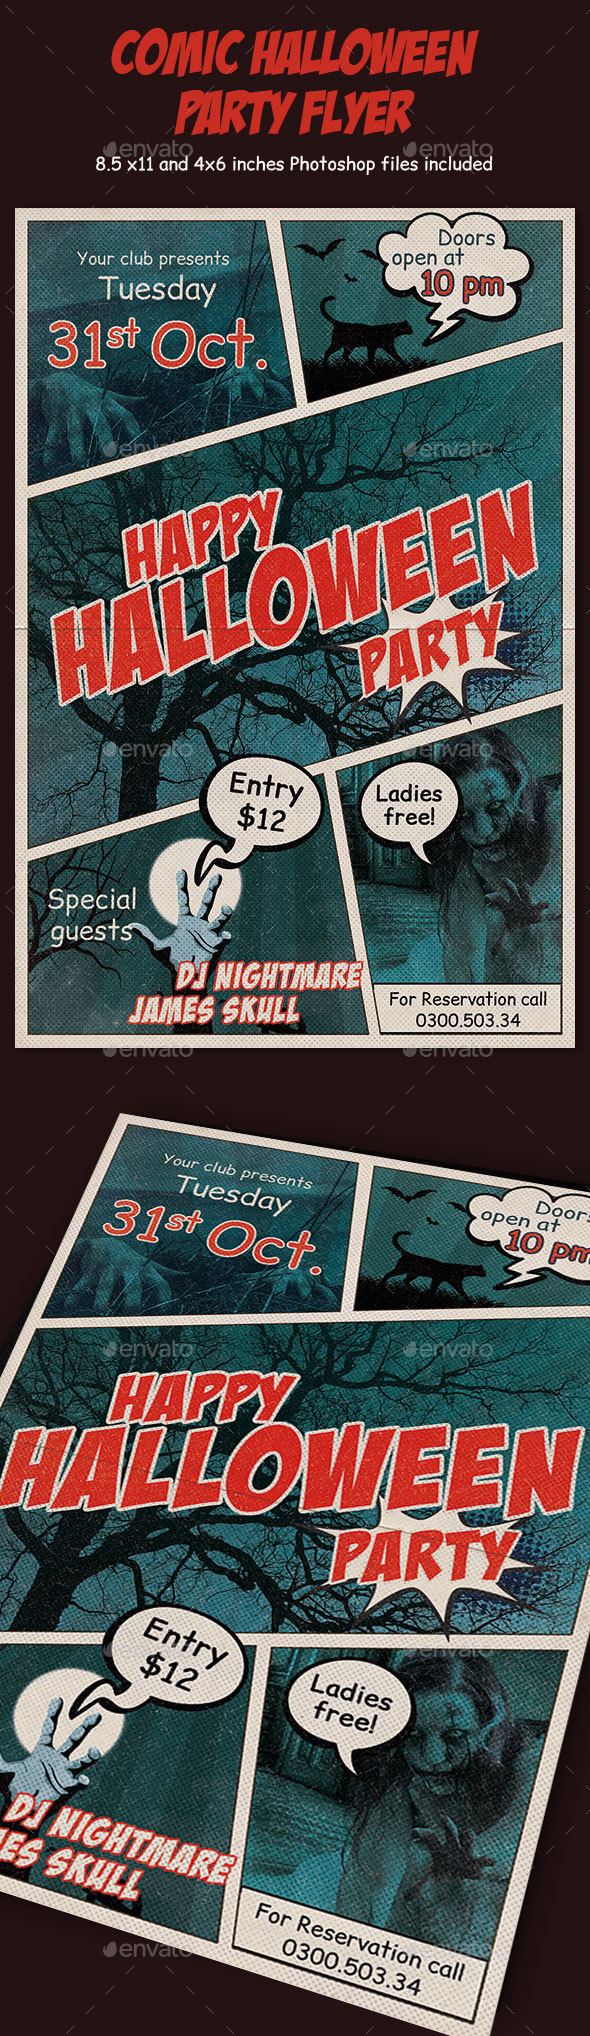 Comic Halloween Party Flyer - Events Flyers